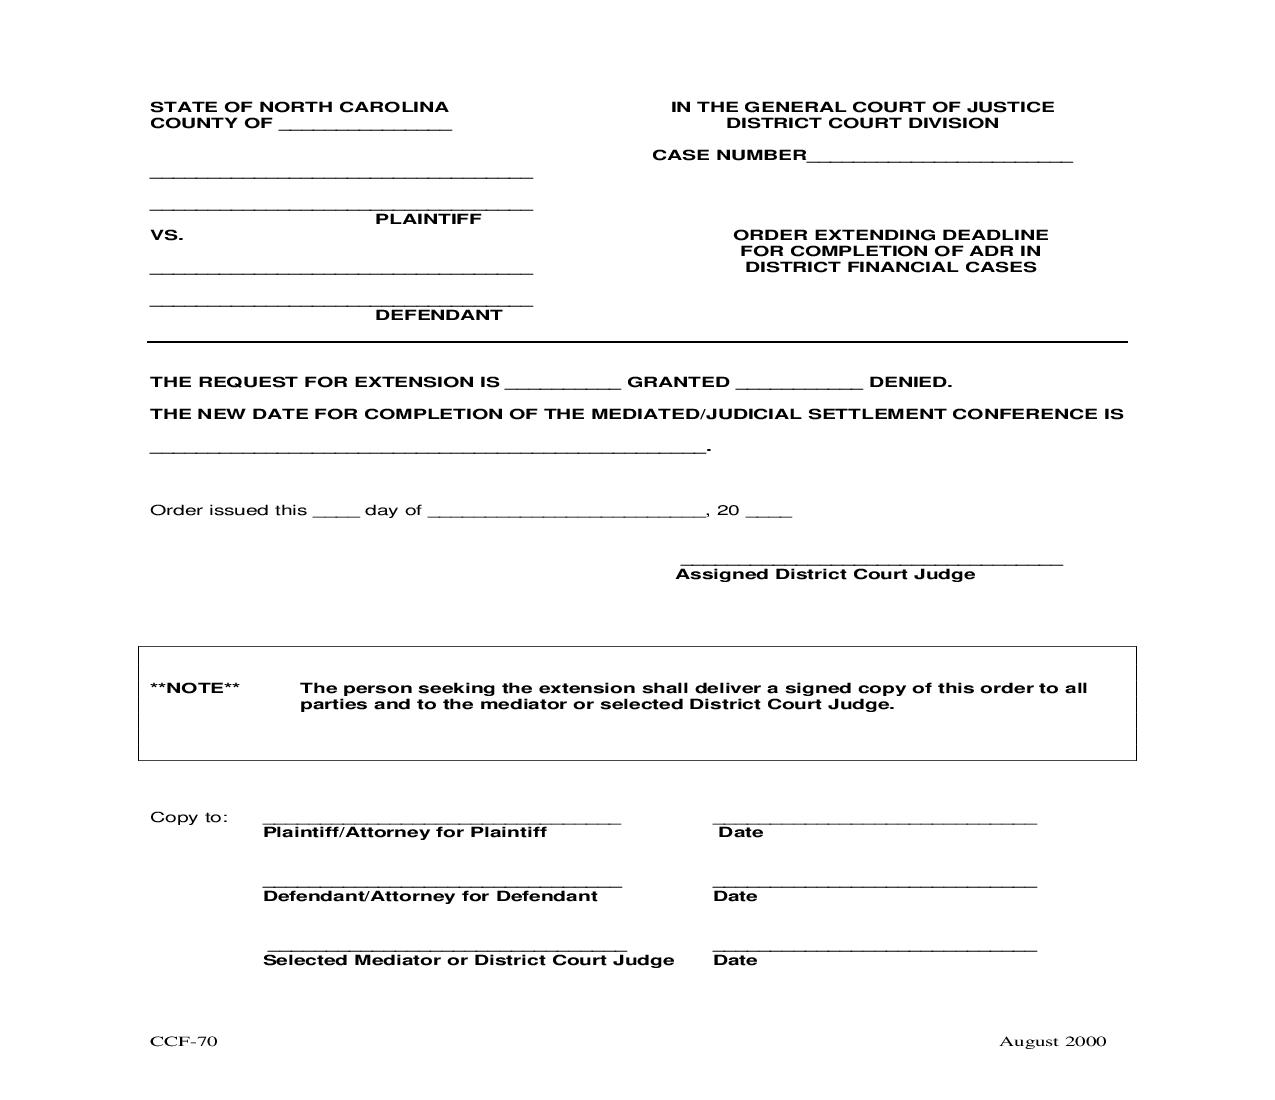 Order Extending Deadline For Completion Of ADR In District Financial Cases {CCF-70} |  | North Carolina